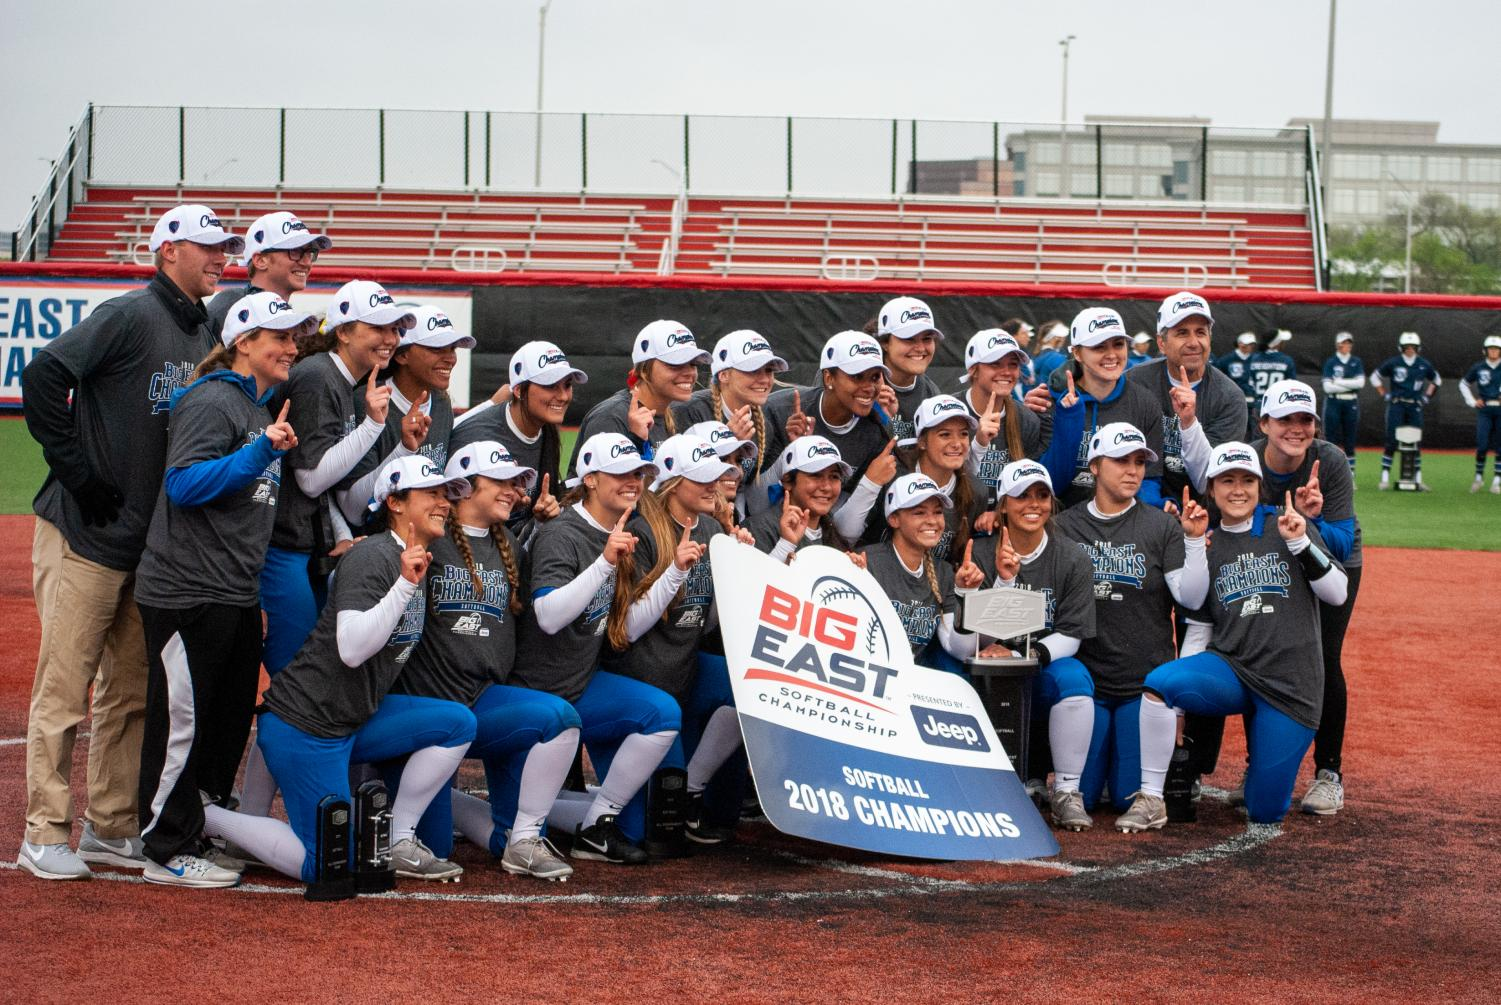 DePaul softball celebrates their 2018 Big East Tournament title. The Blue Demons won their third straight Big East Tournament title against Villanova on Saturday in Rosemont.